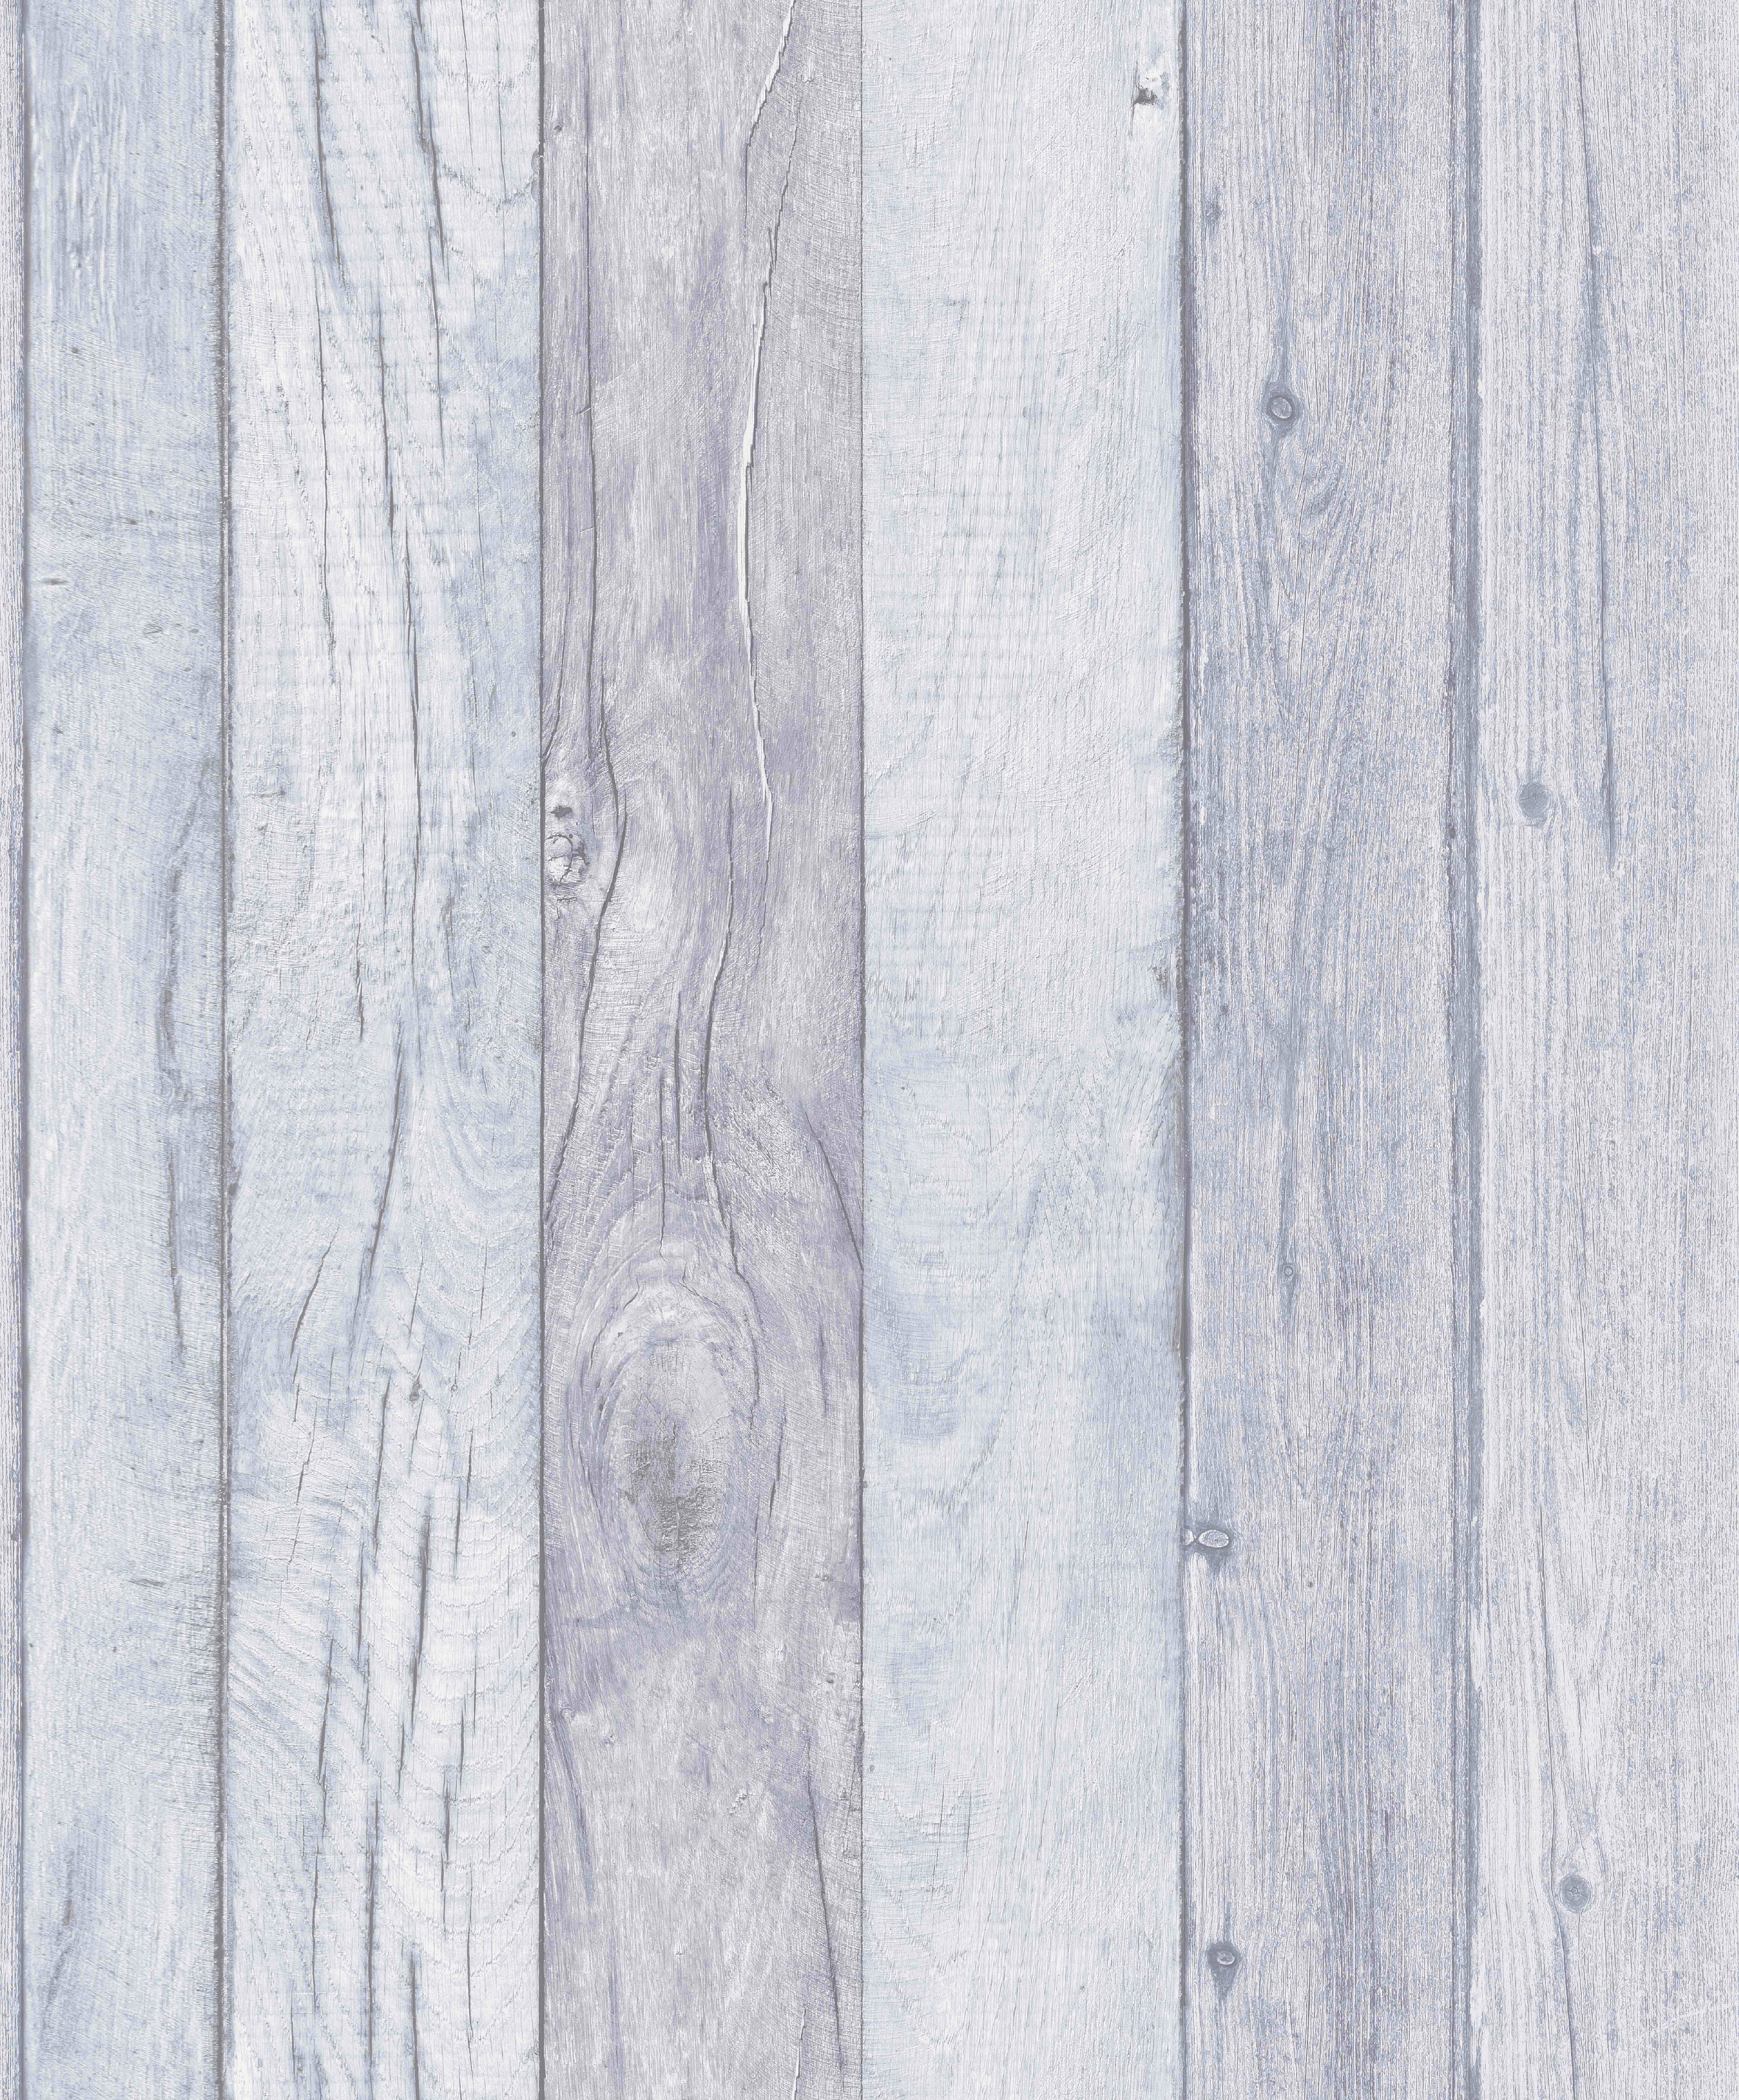 Grandeco ideco home wood wallpaper a17403 blue cut for Wooden wallpaper price